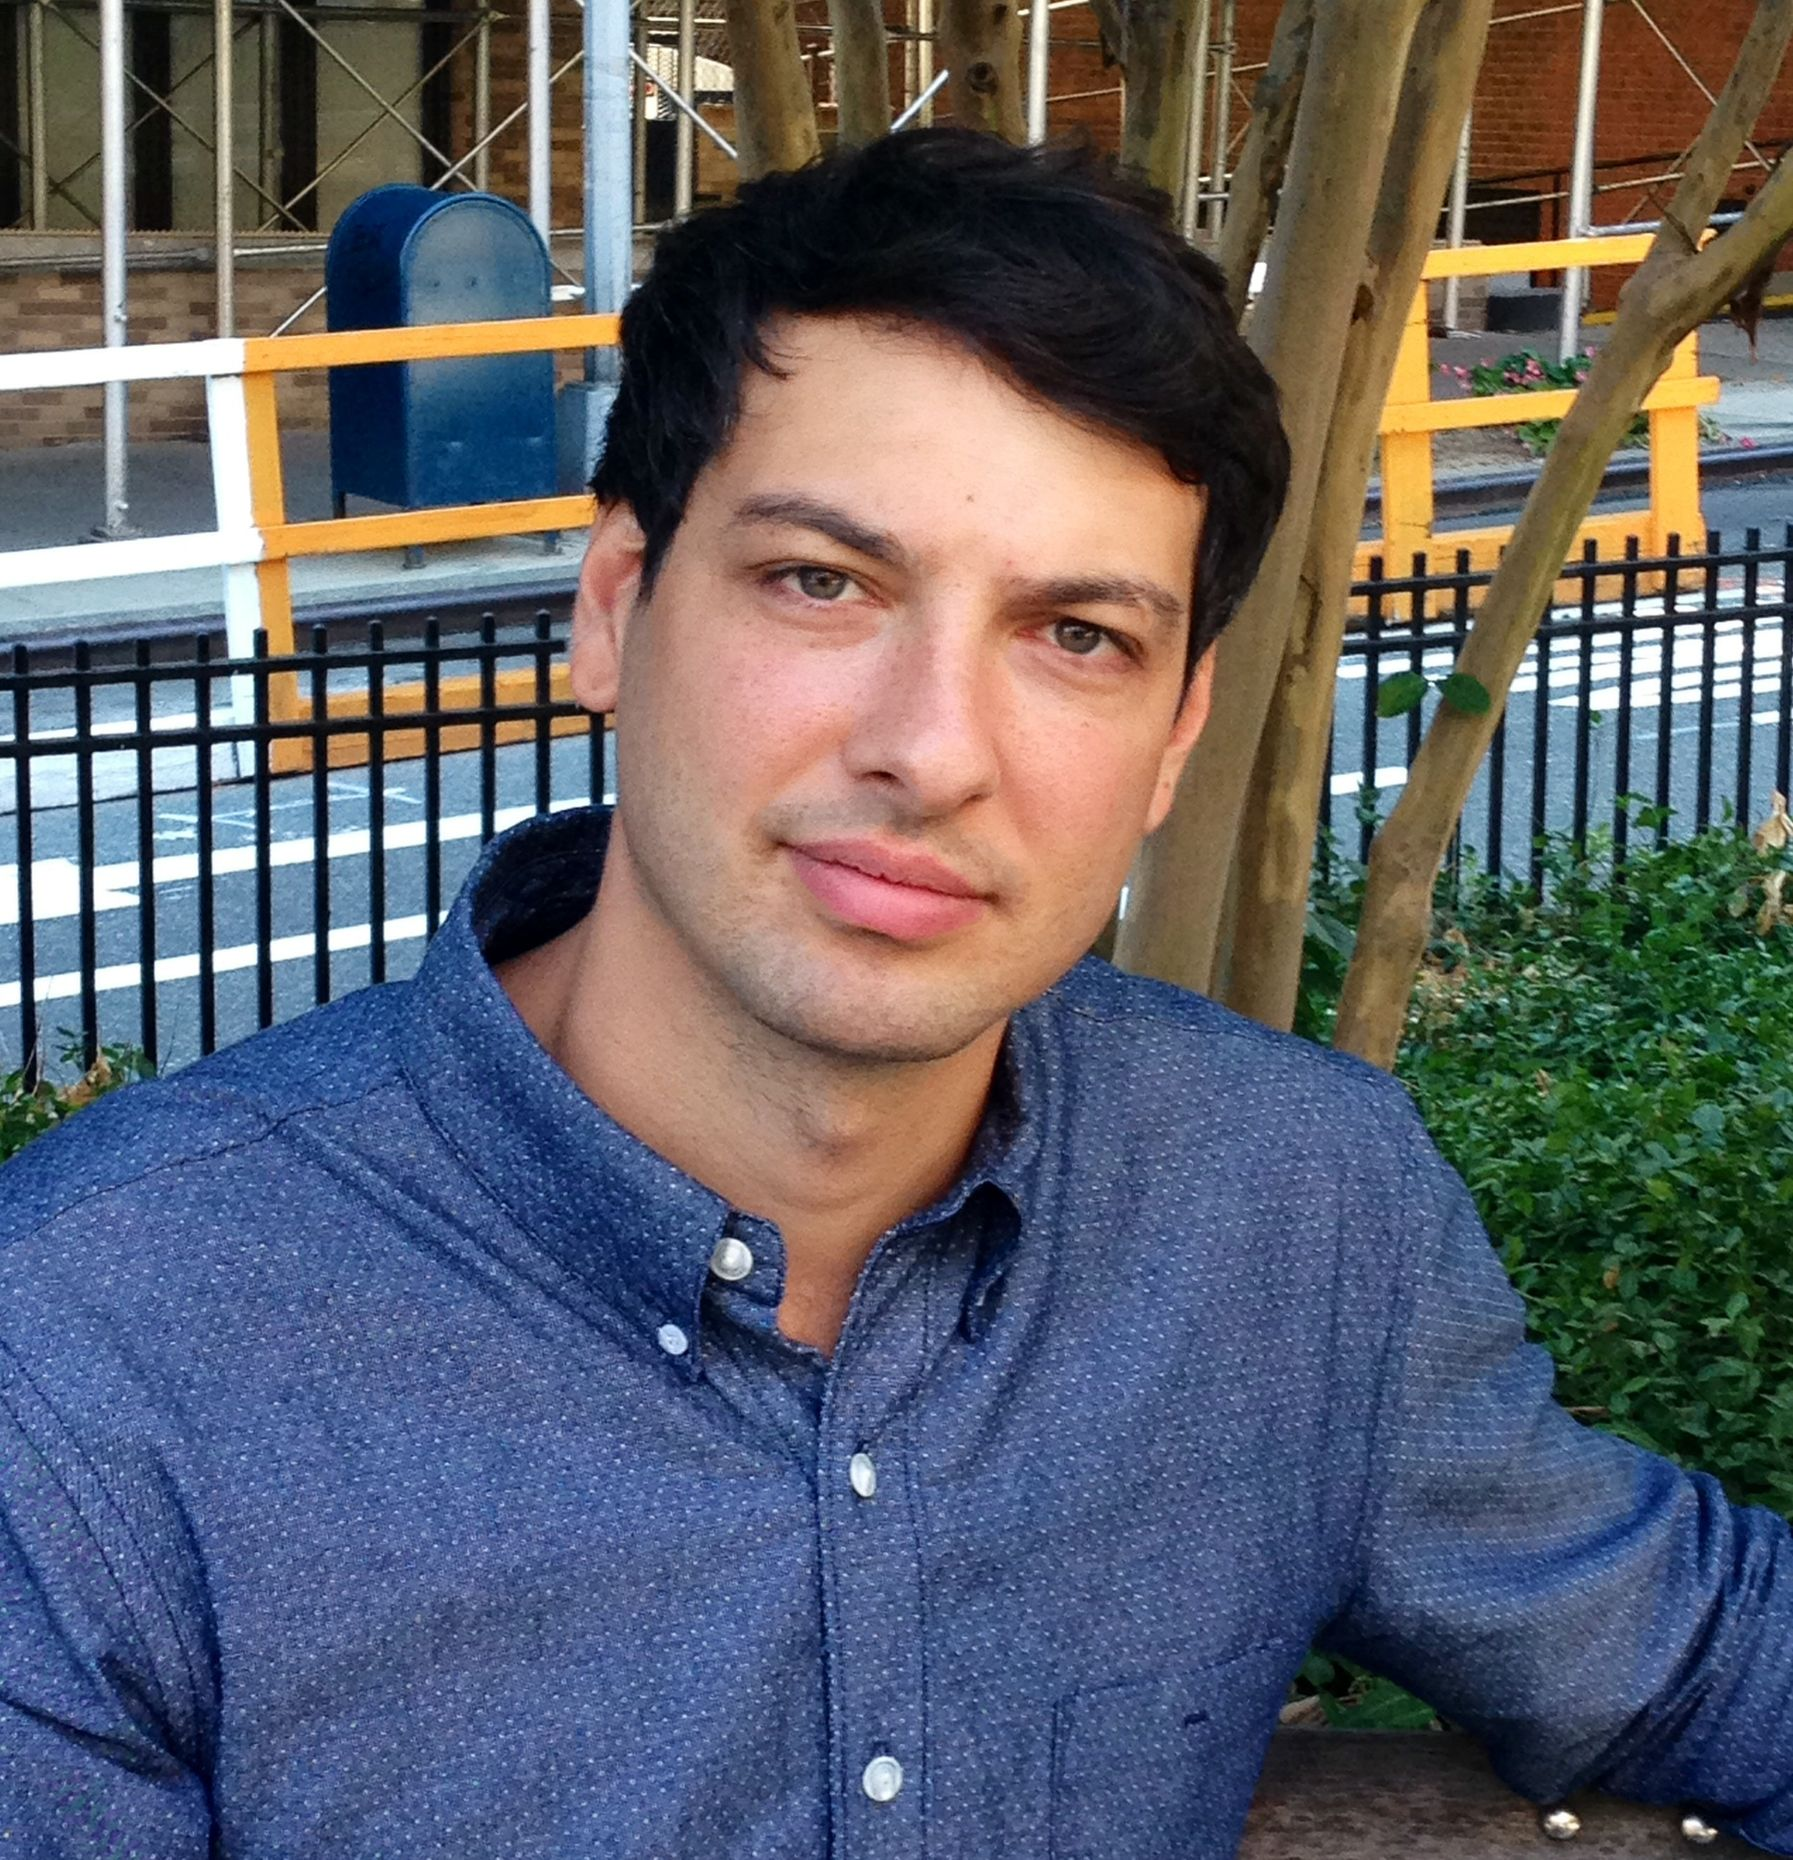 Benjamin DiCicco-Bloom, formerly a visiting assistant professor of sociology at F&M and now a visiting scholar at the University of Pennsylvania.